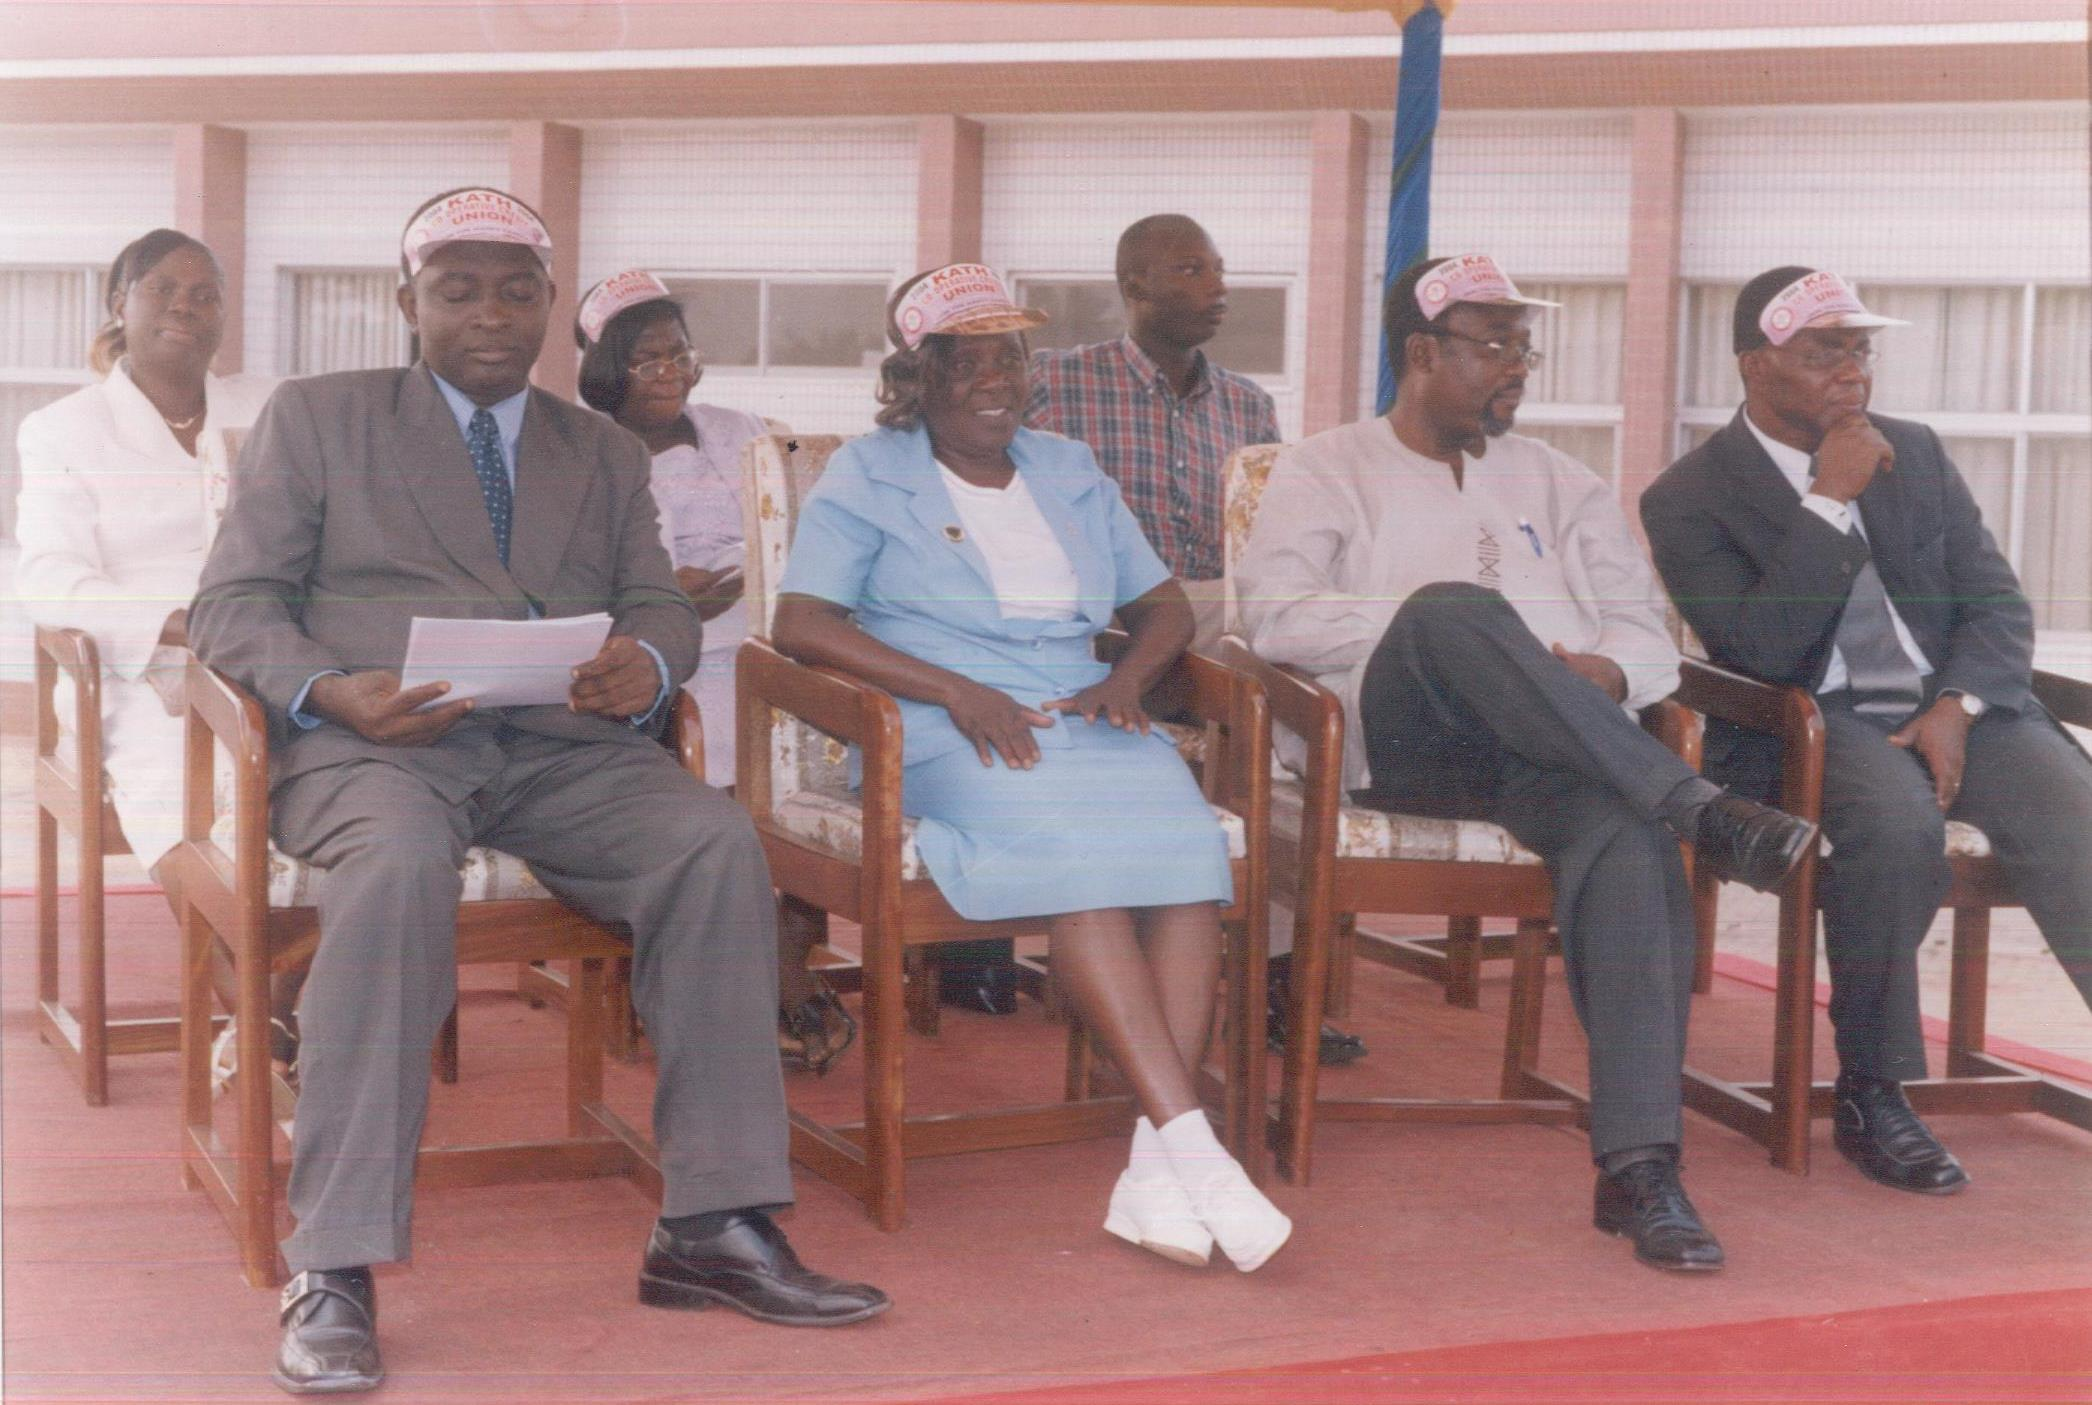 From left to right - Mr. Isaiah Offe-Gyimah (then Director of Administration, KATH),Mrs. Margaret Atiemo,(Retired Director of Nursing, KATH), Dr. Anthony Nsiah Asare (then CEO of KATH), Dr. Charles Anane (Medicine Directorate, KATH)